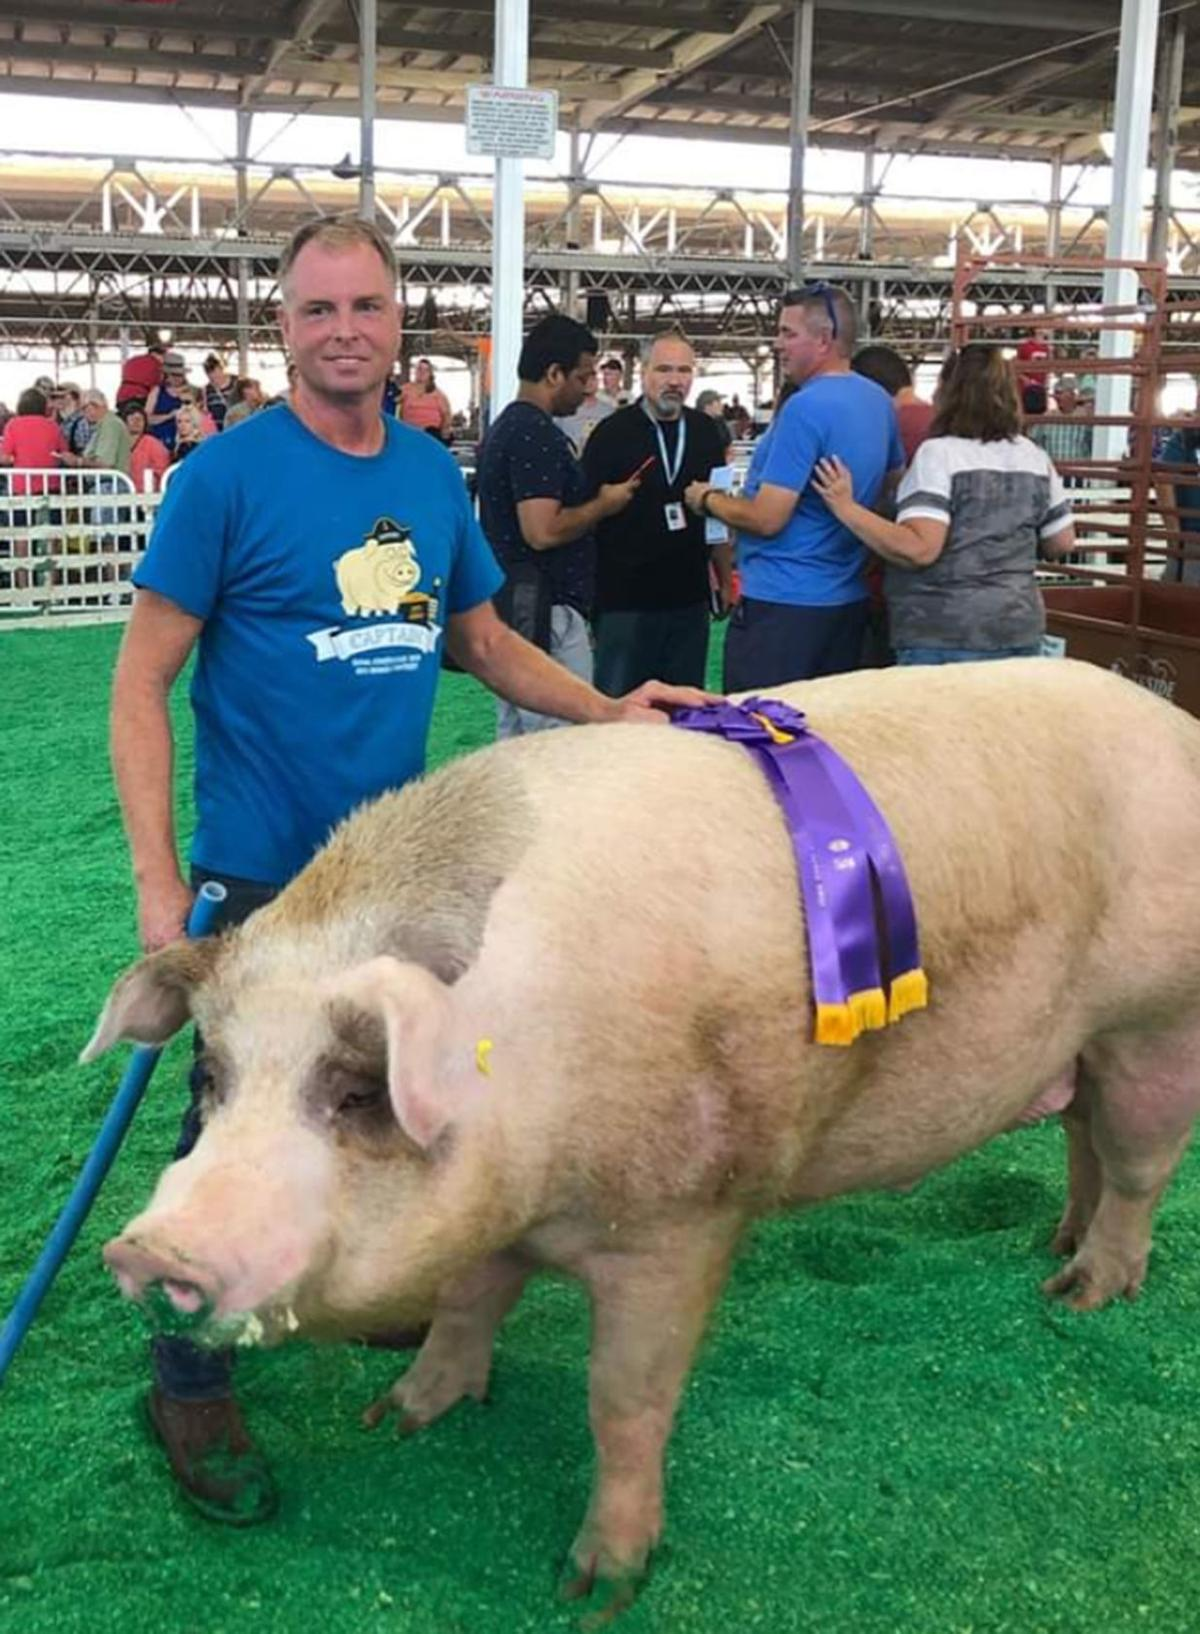 State's biggest pig again hails from Northeast Iowa | Tri-state News